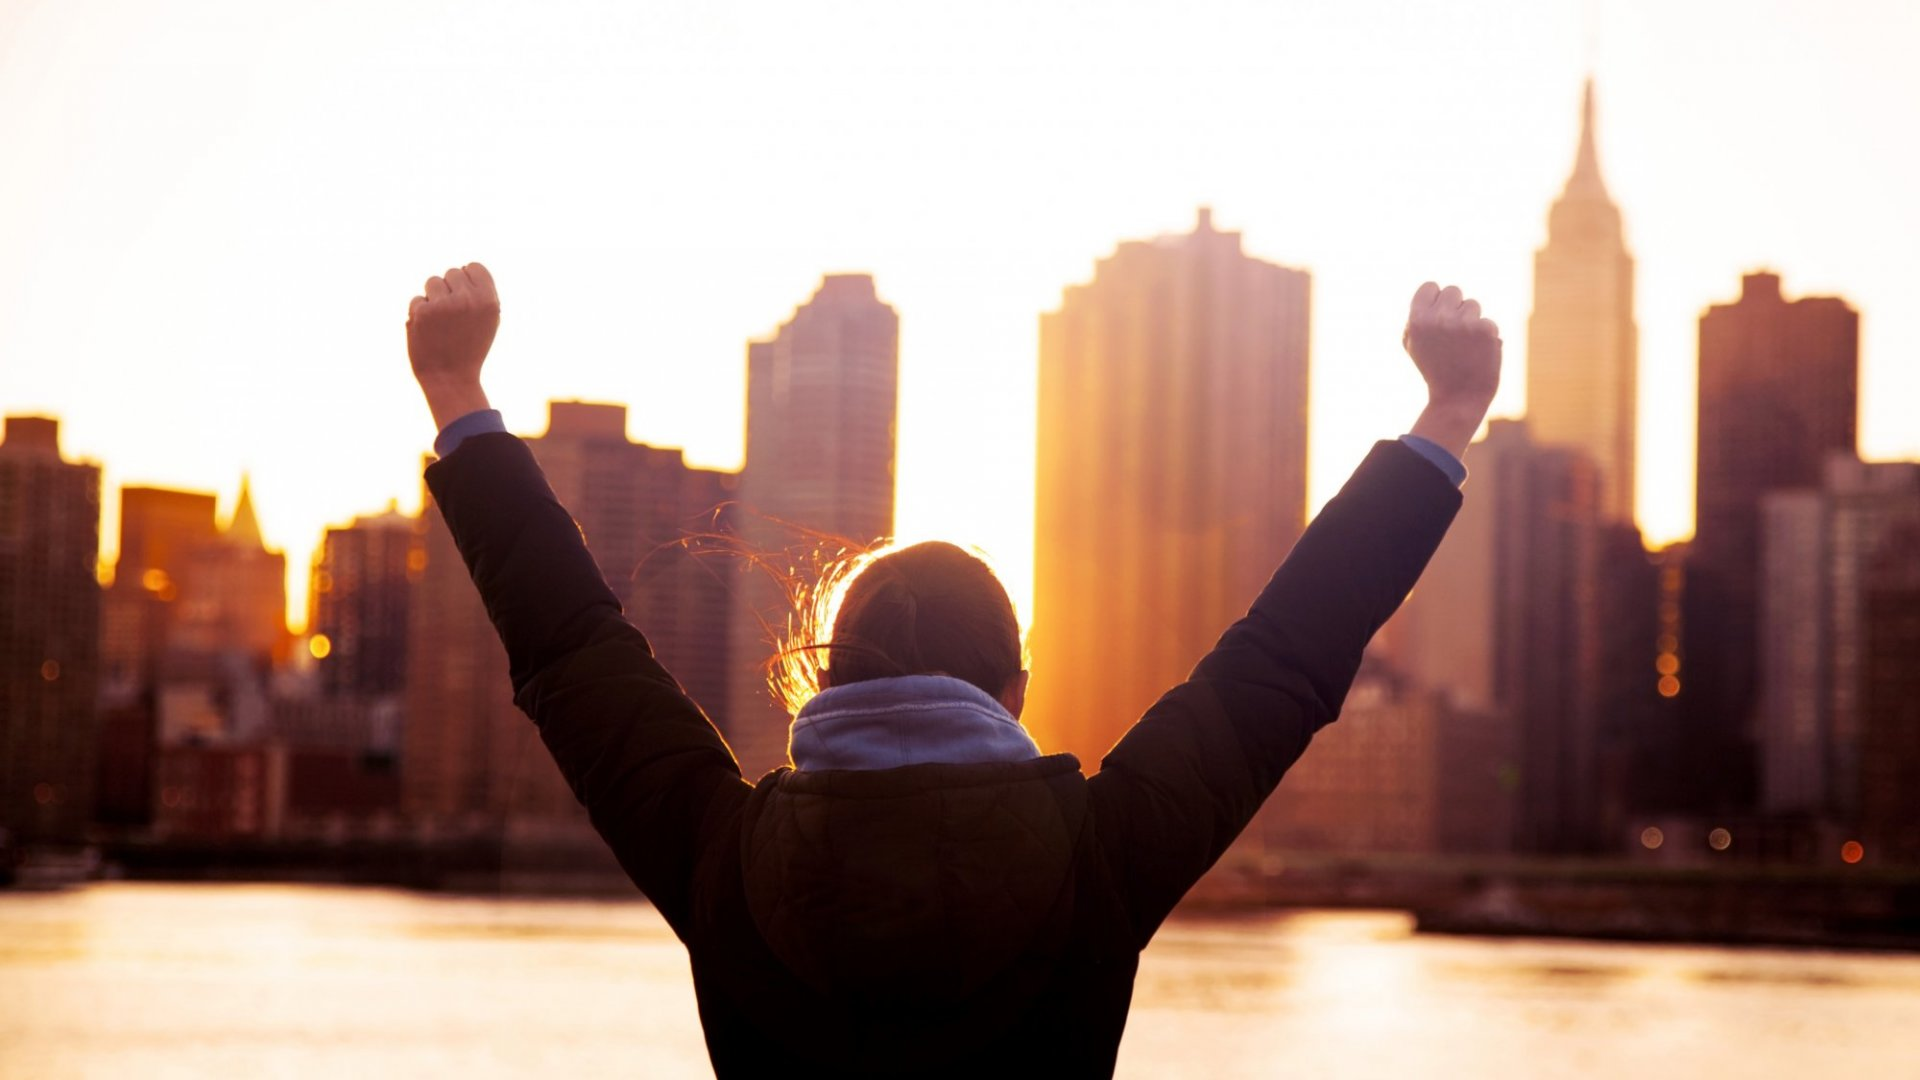 5 5-Minute Routines That Will Make You Wildly Wealthy and Successful